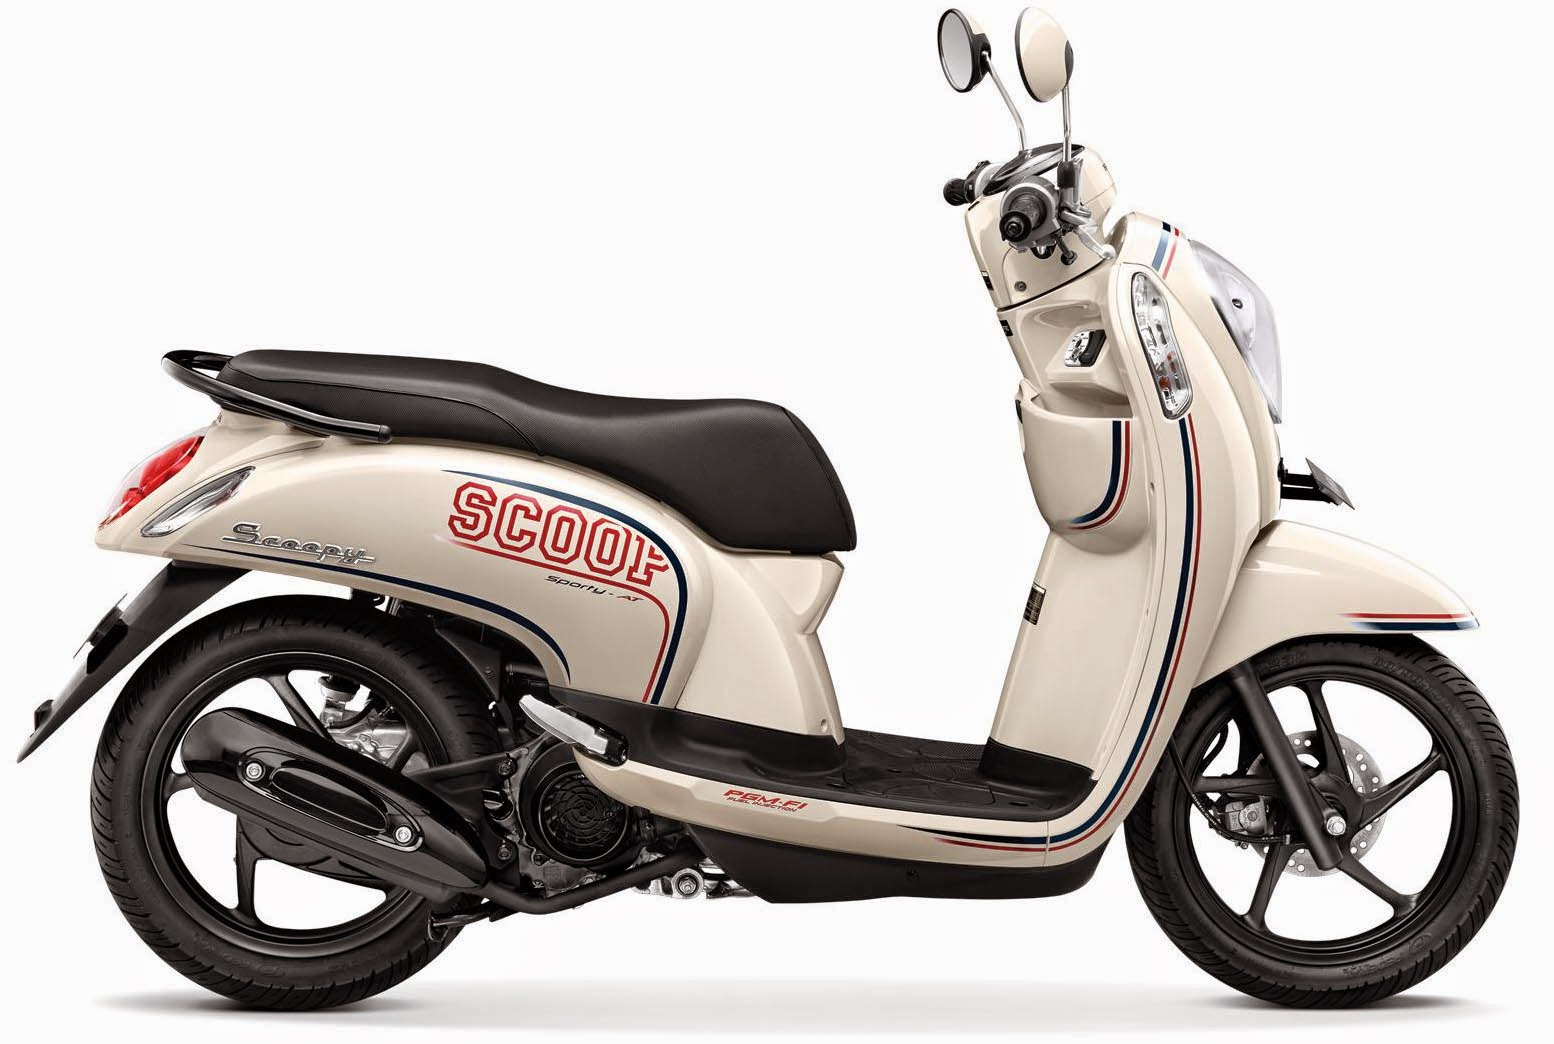 Honda Scoopy FI for rent in UBUD